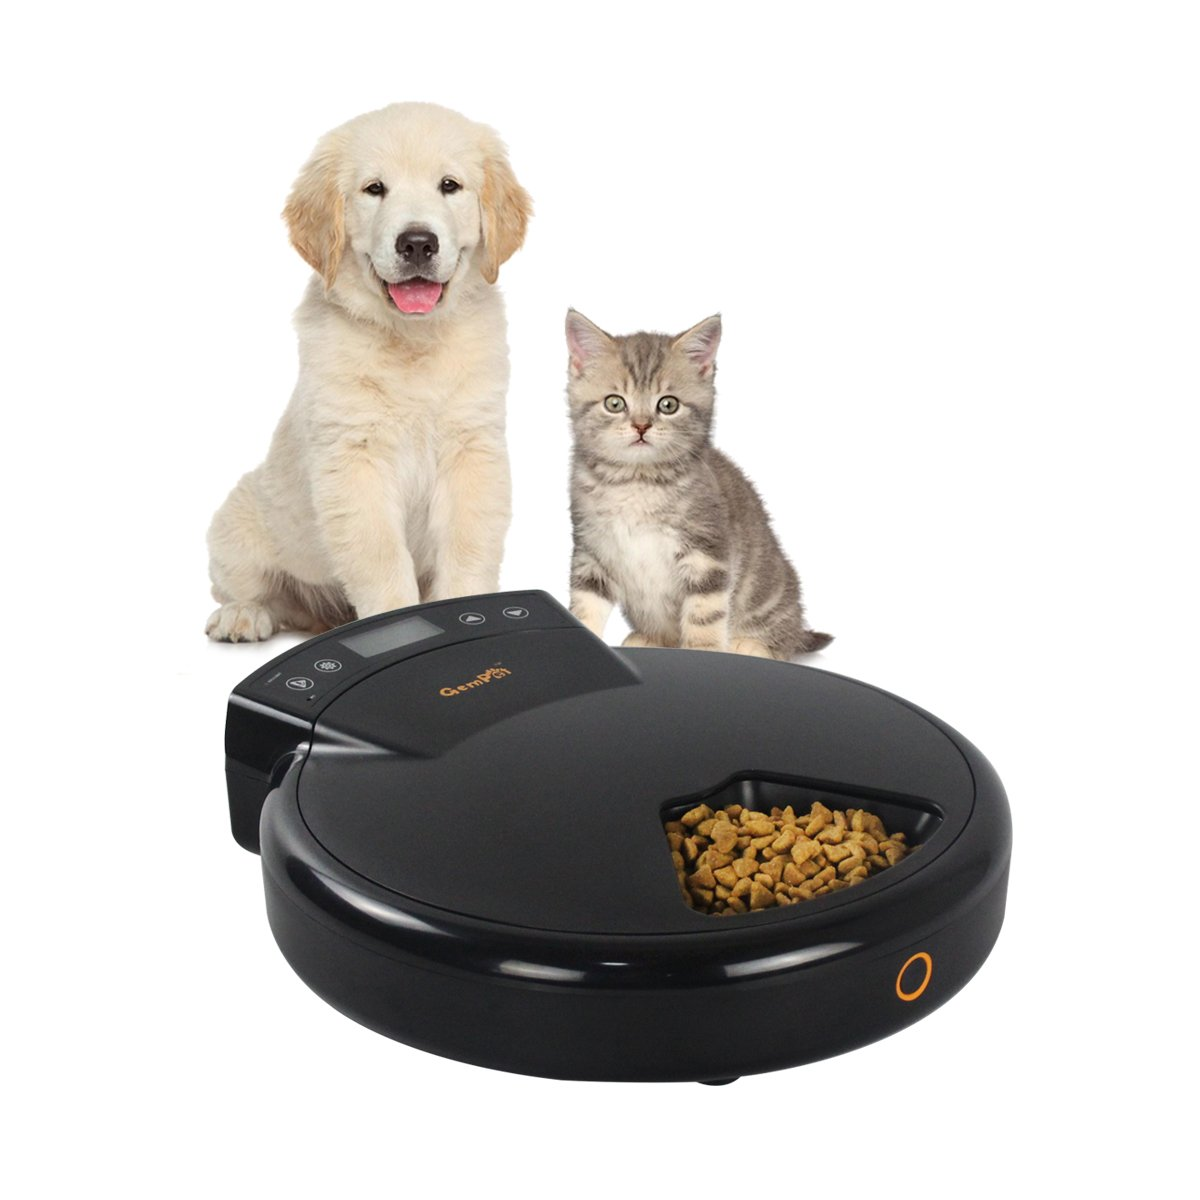 GemPet 5 Meal Trays Automatic Pet Feeder for Cats and Dogs, for Dry and Wet Food, 240ml Per Tray, Dual Power System